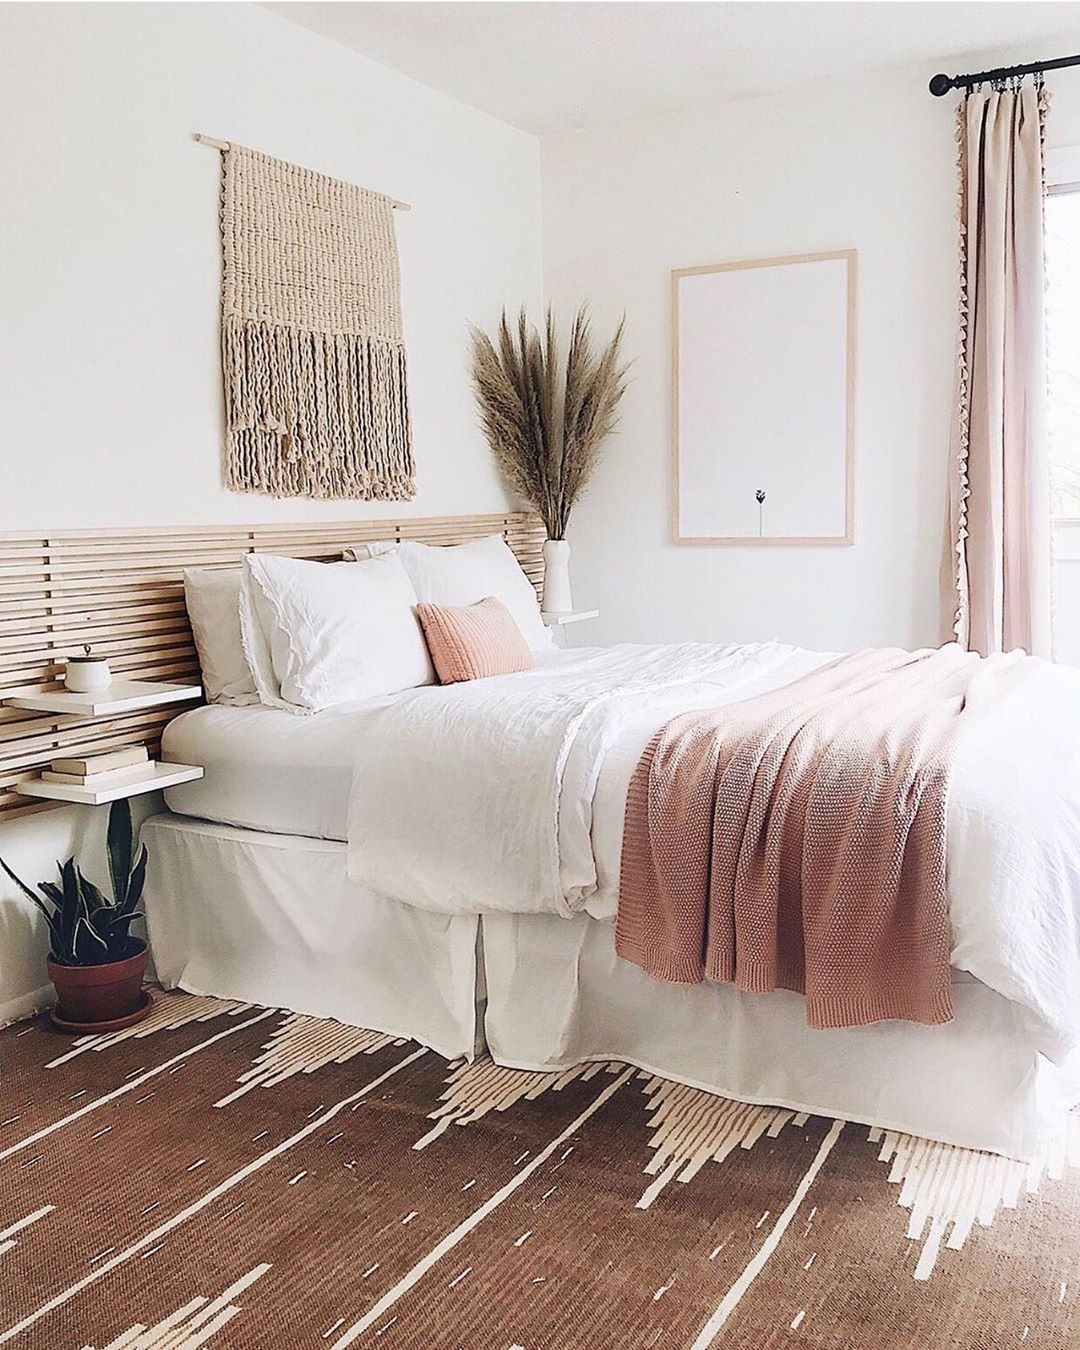 60+ Bohemian Minimalist with Urban Outfiters Bedroom Ideas - 60+ Bohemian Minimalist with Urban Outfiters Bedroom Ideas Liketogirls liketogirls Home Decor Bedroom decor; cozy bed room decor apartment; modern bed room decor ideas on a budget; bed room decor ideas rustic #bedroomdecor     Liketogirls  Bedroom decor; cozy bed room decor apartment; modern bed room decor ideas on a budget; bed room decor ideas rustic #bedroomdecor liketogirls  60+ Bohemian Minimalist with Urban Outfiters Bedroom Ide #minimalisthomedecor